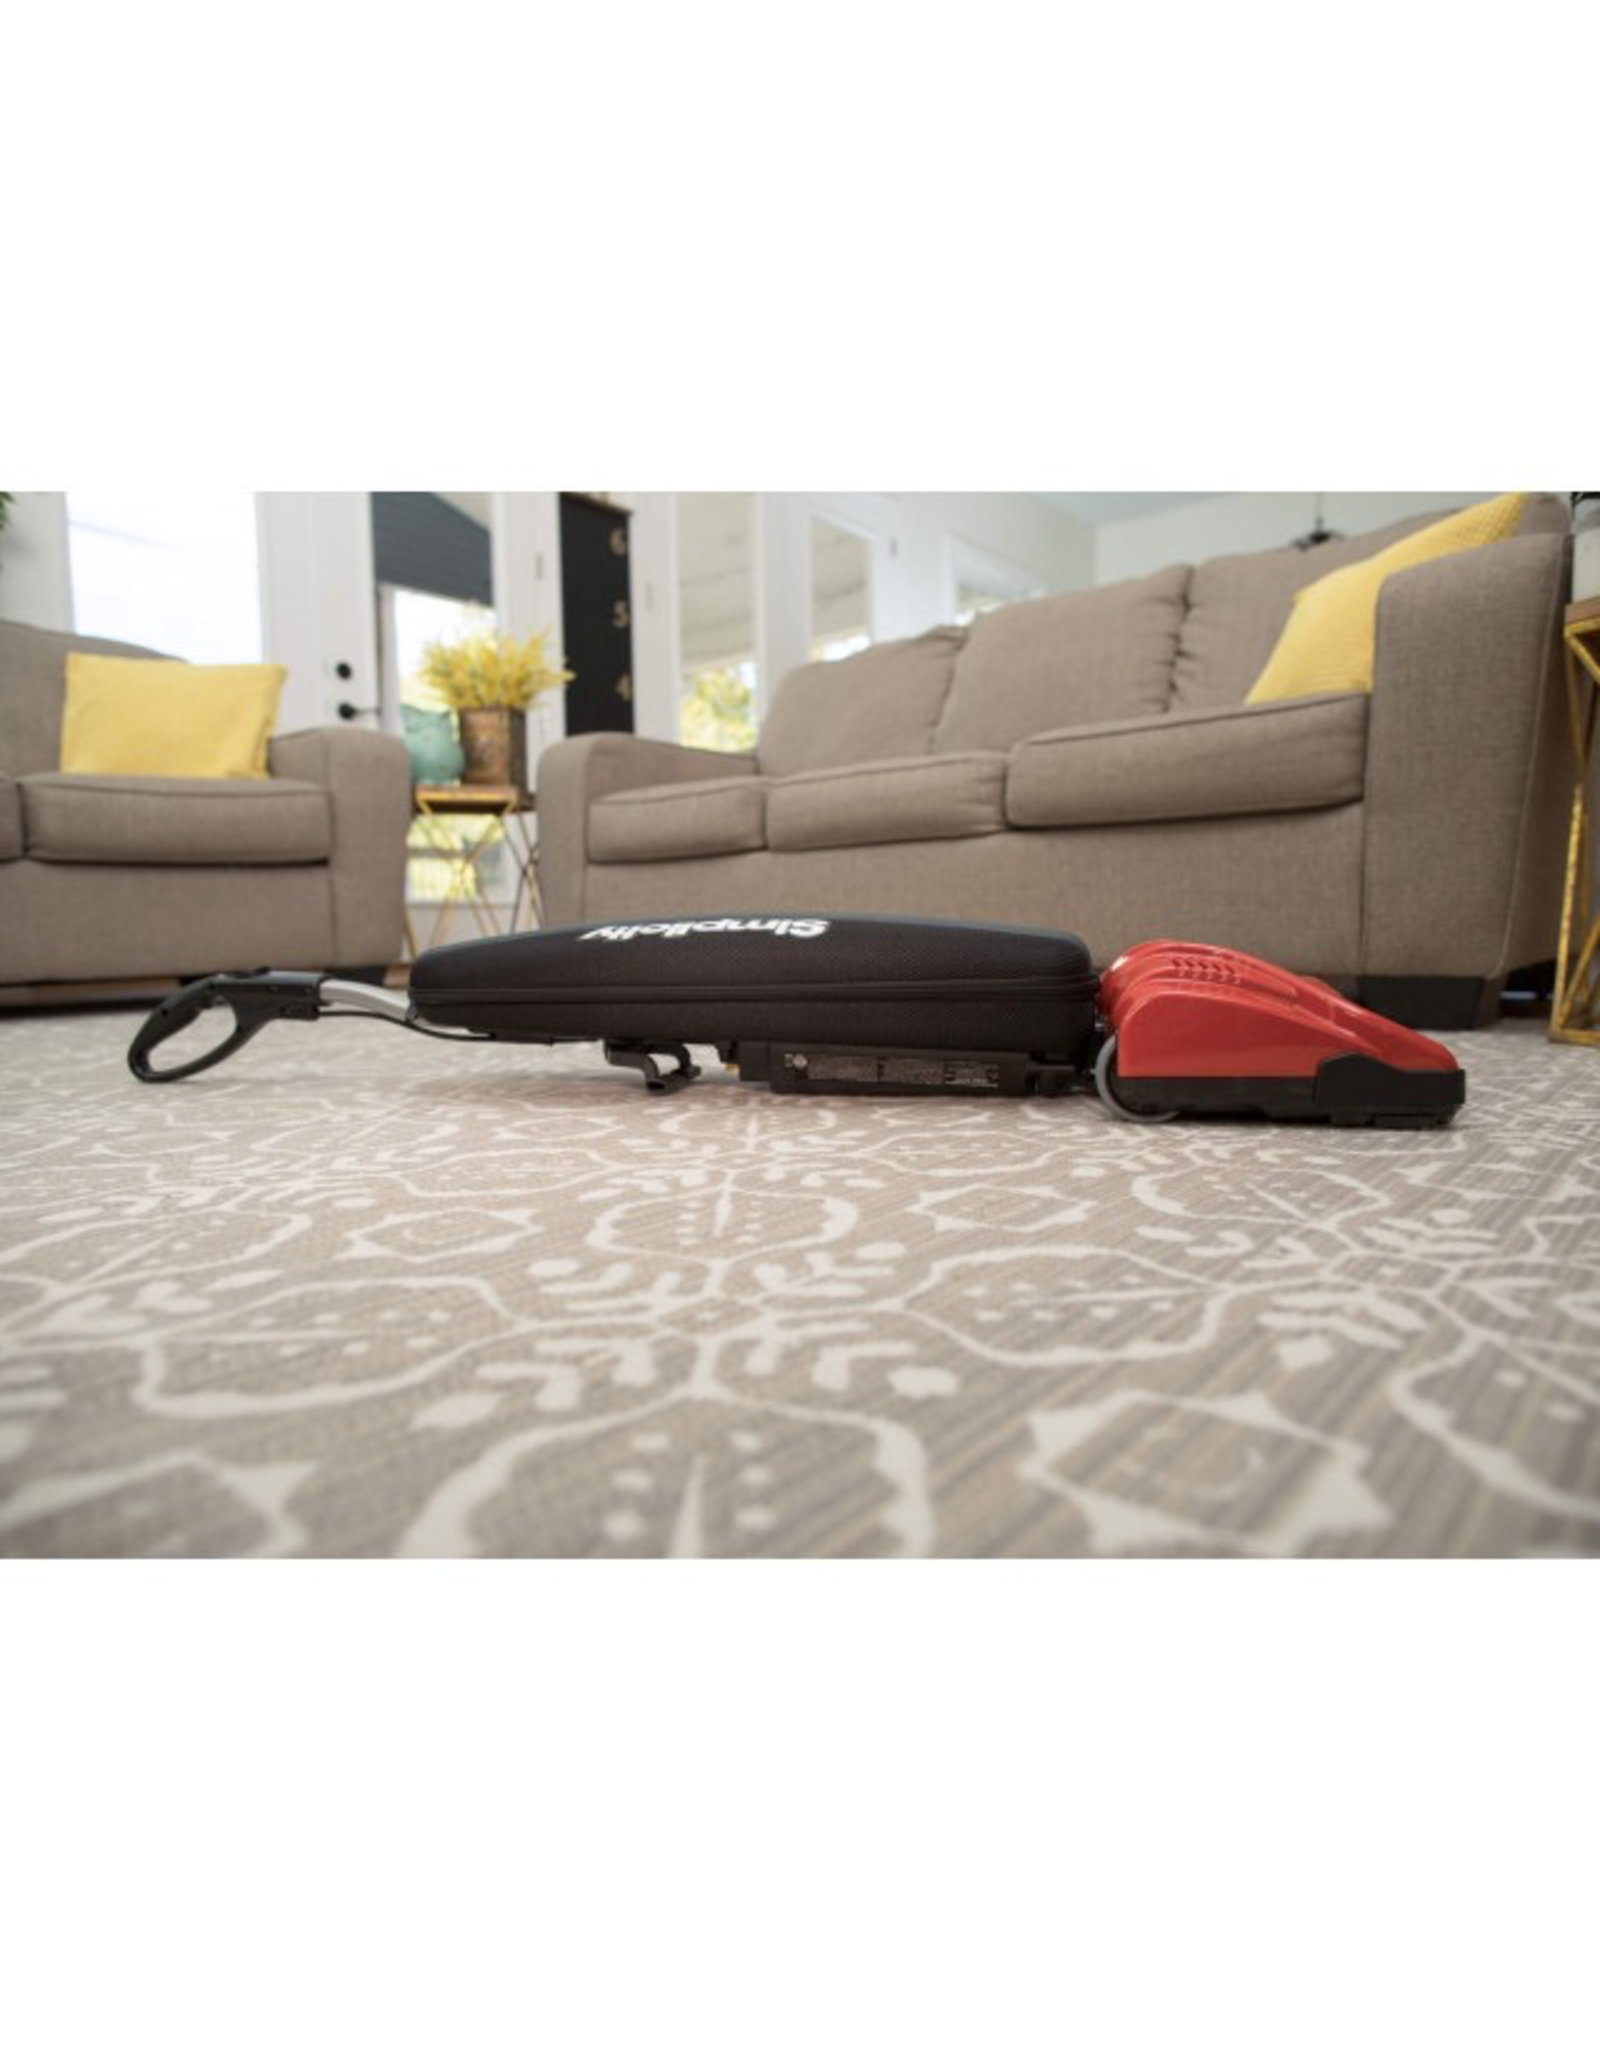 Simplicity Simplicity Freedom Cordless Upright Vacuum